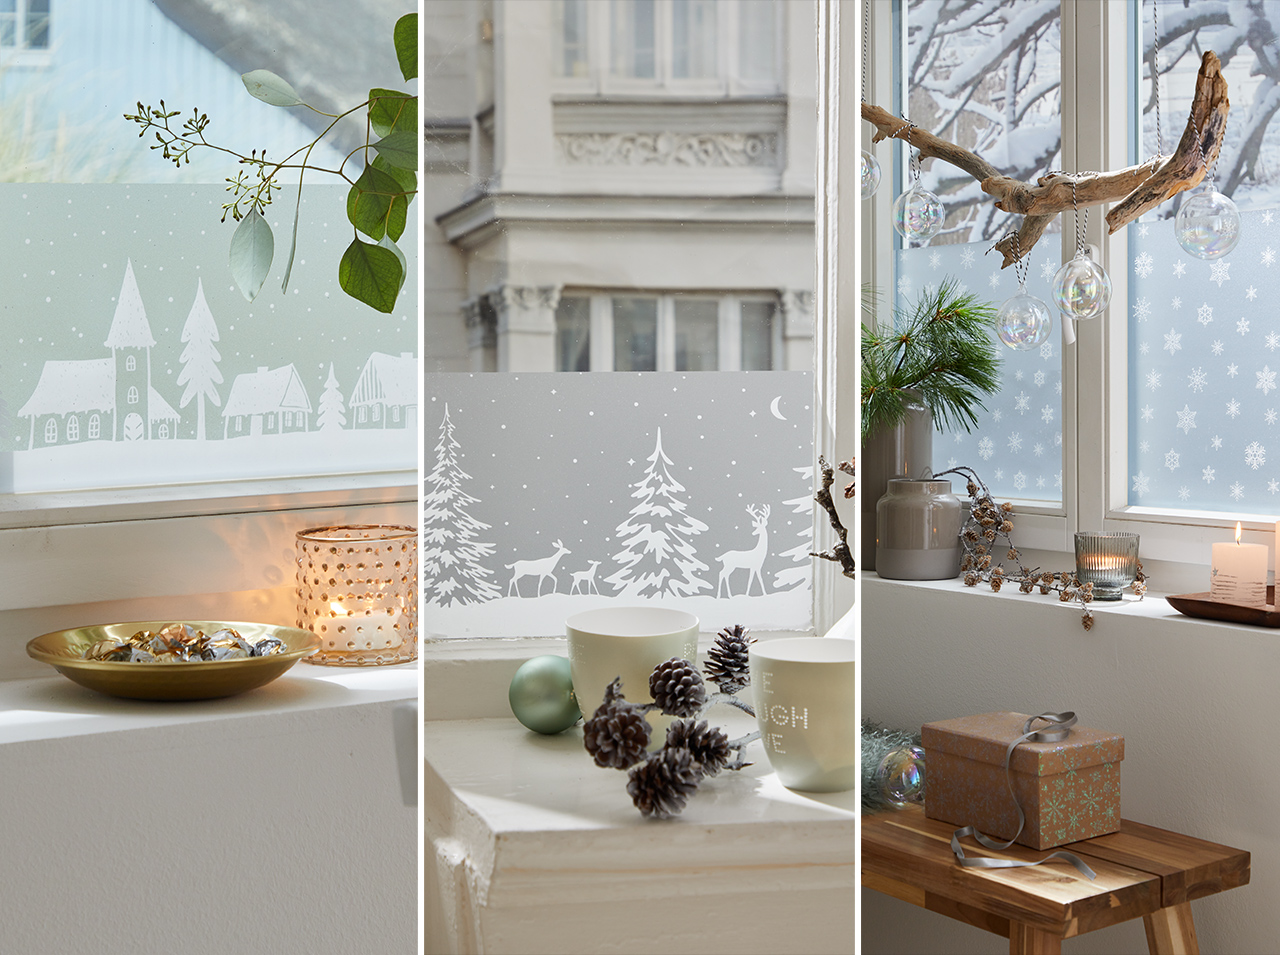 dcfix window glass window film DIY decoration living room winter Christmas